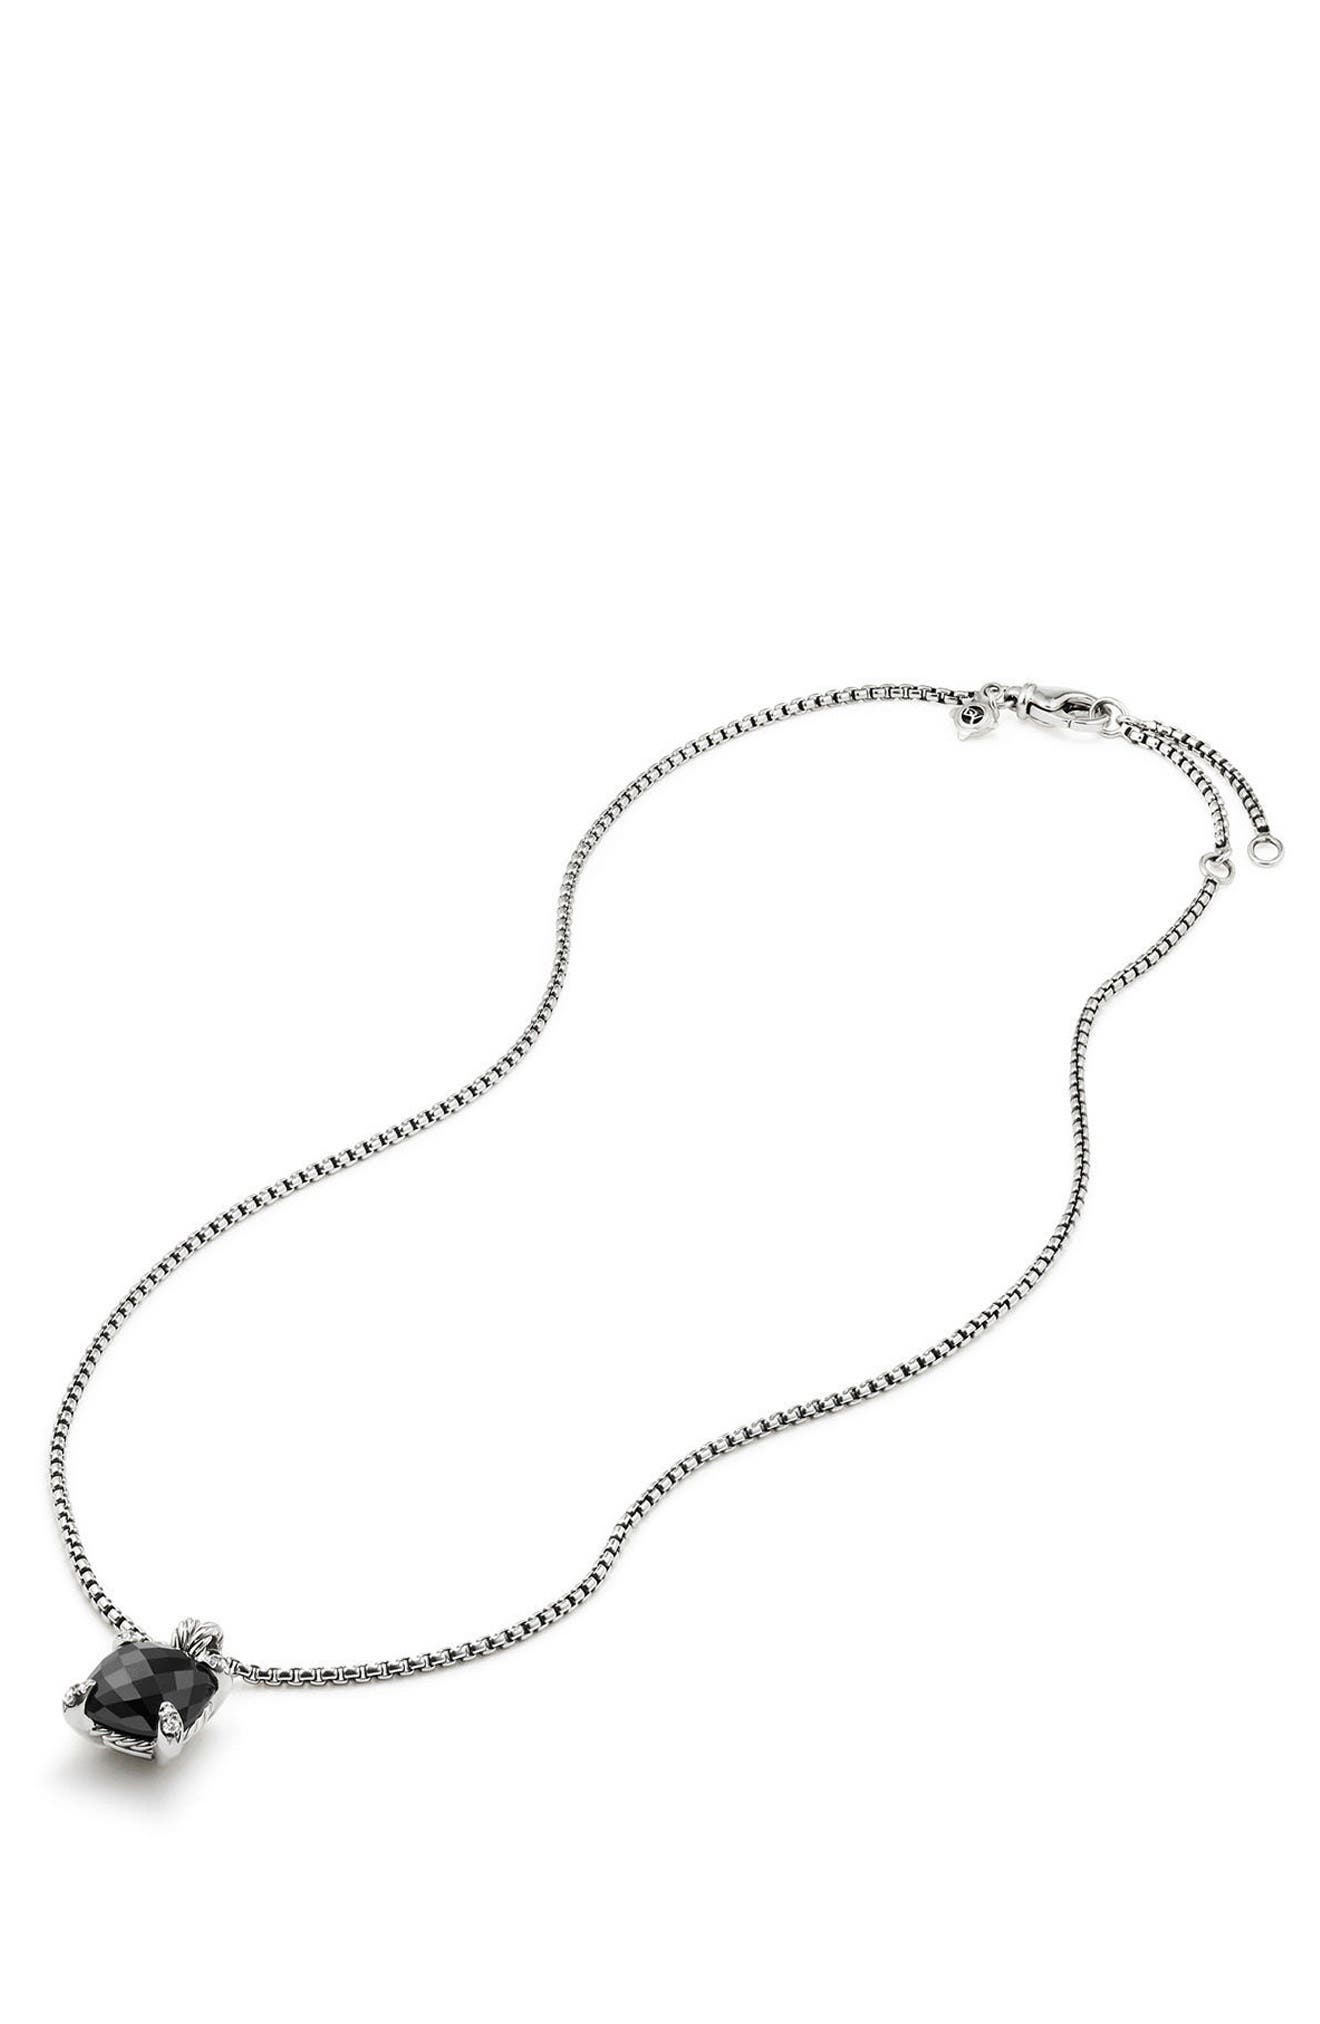 Châtelaine Pendant Necklace with Black Onyx and Diamonds,                             Alternate thumbnail 3, color,                             Black Onyx